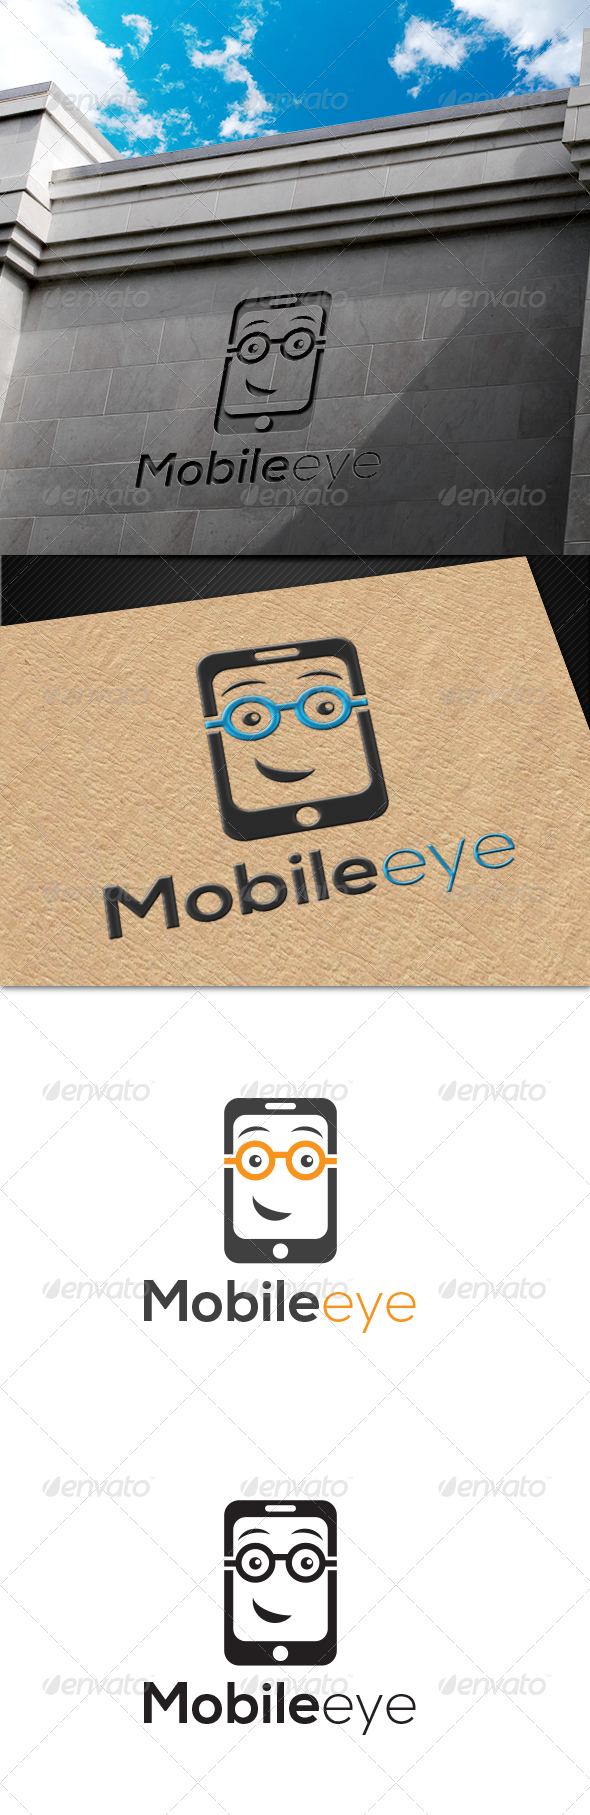 MobileEye Logo - Objects Logo Templates